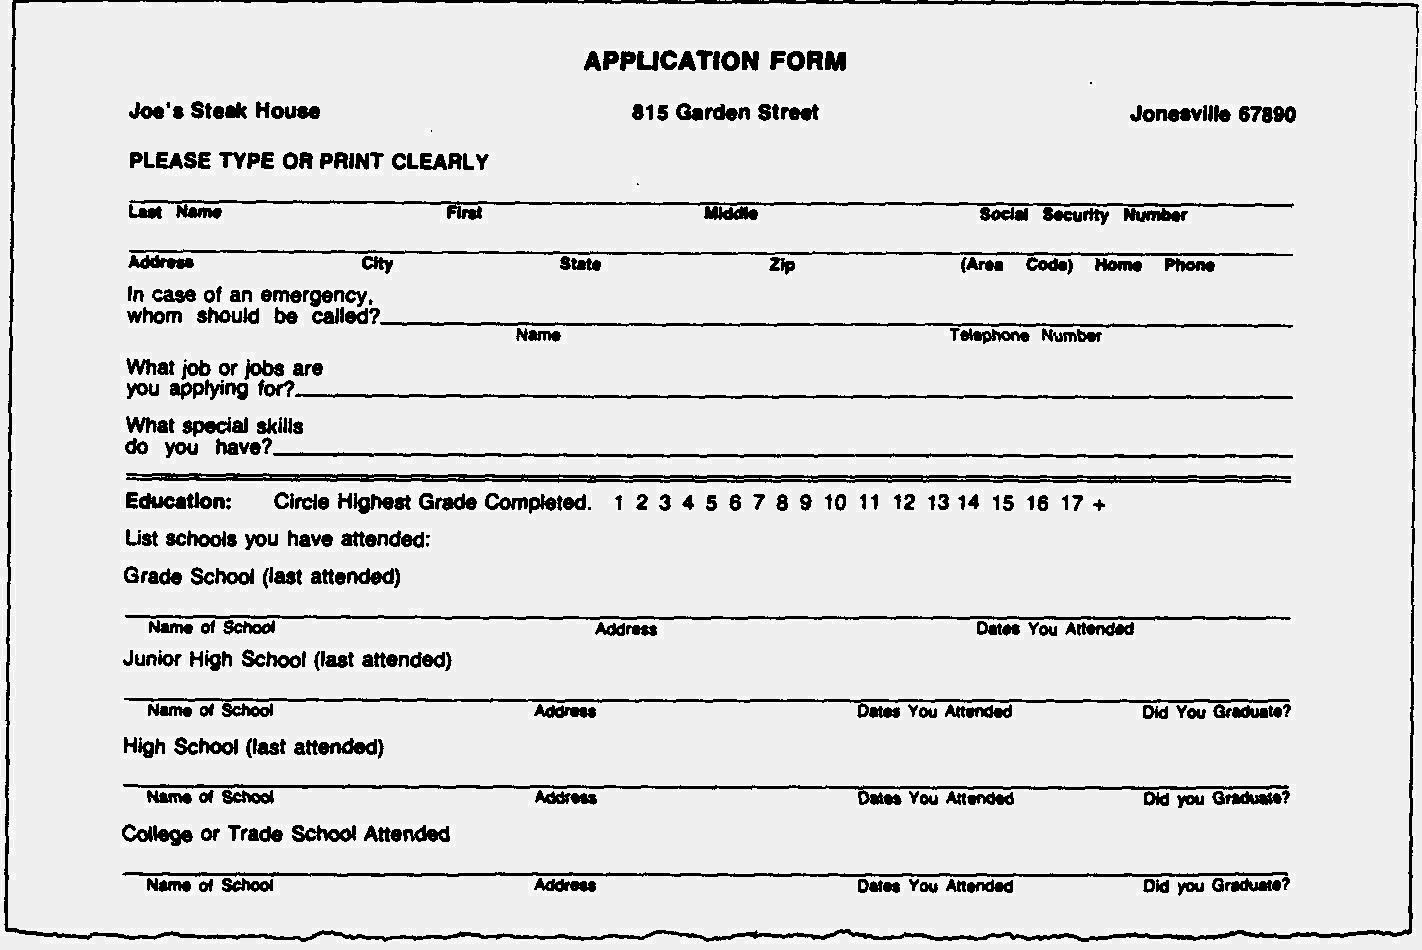 Blank Resume Forms To Fill Out - http://jobresumesample.com/325 ...